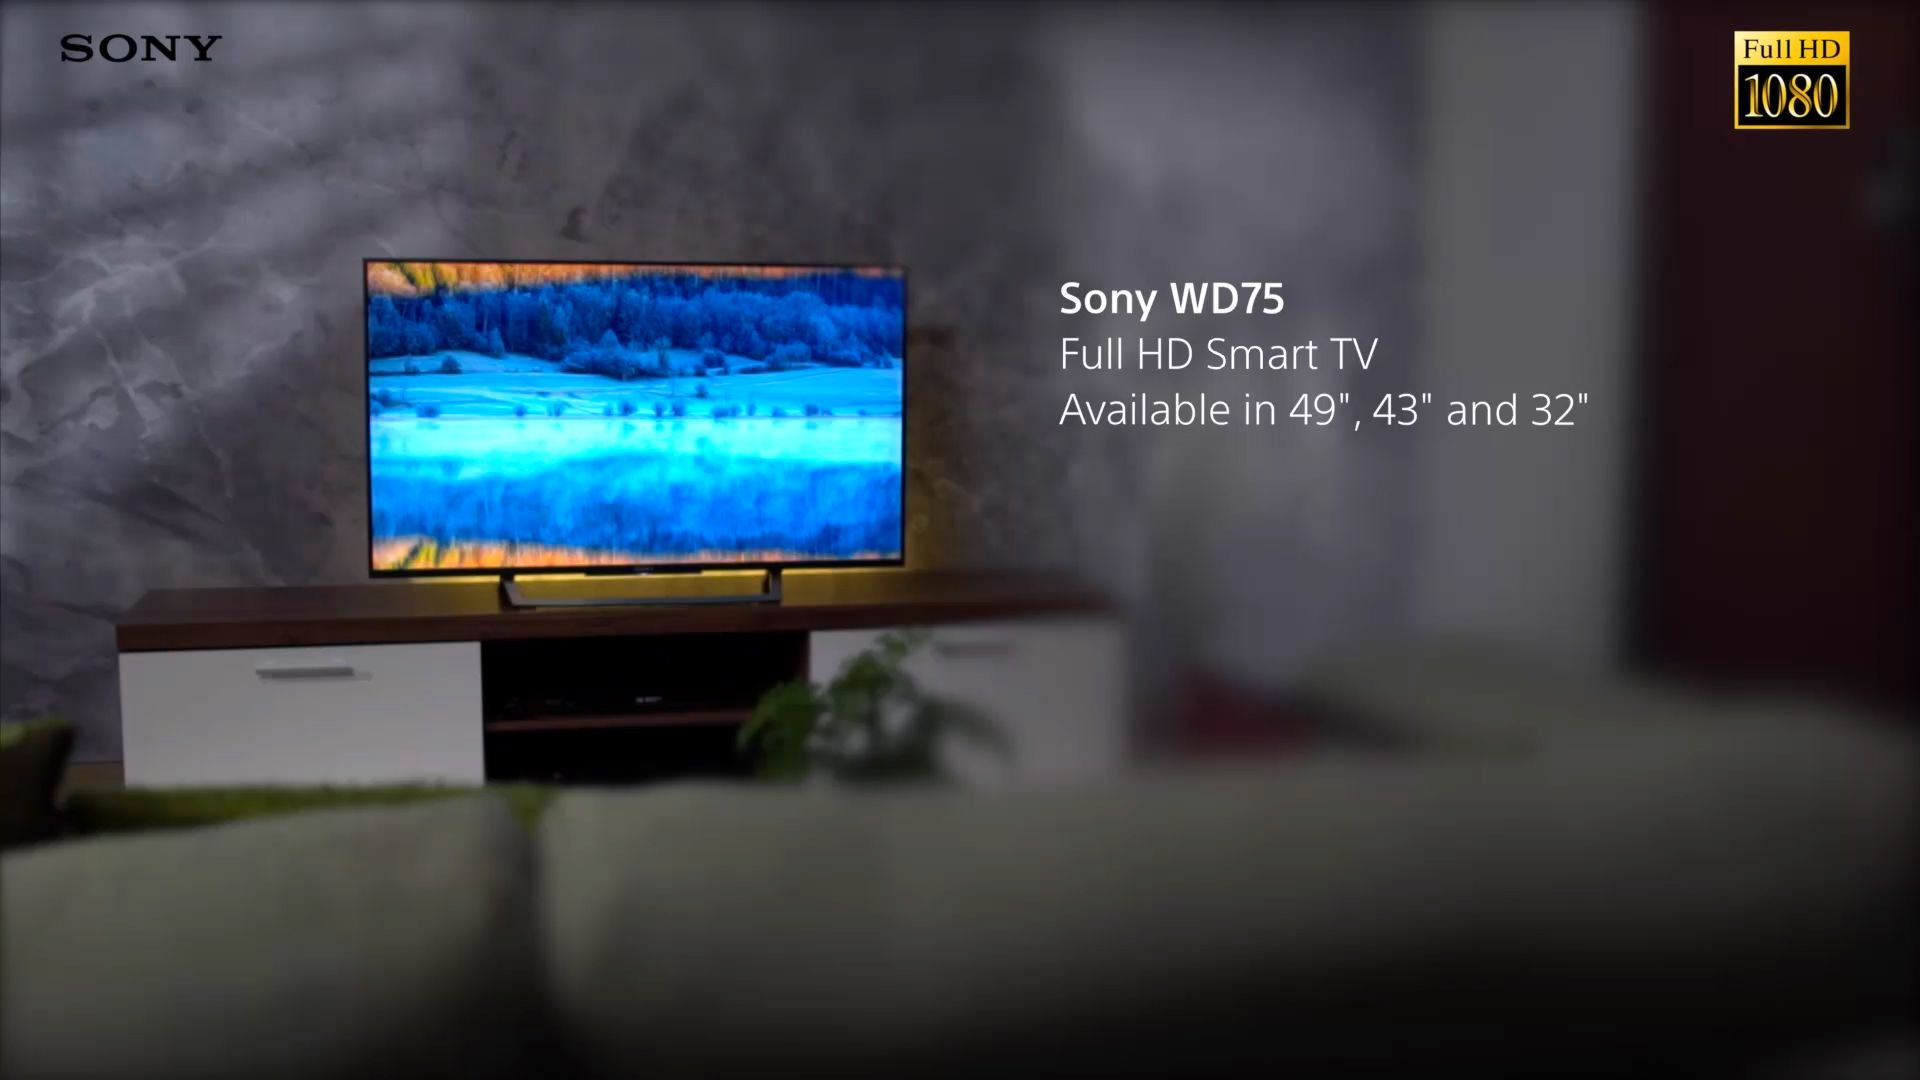 Sony Bravia 32WD756BU LED HD 1080p Smart TV, 32